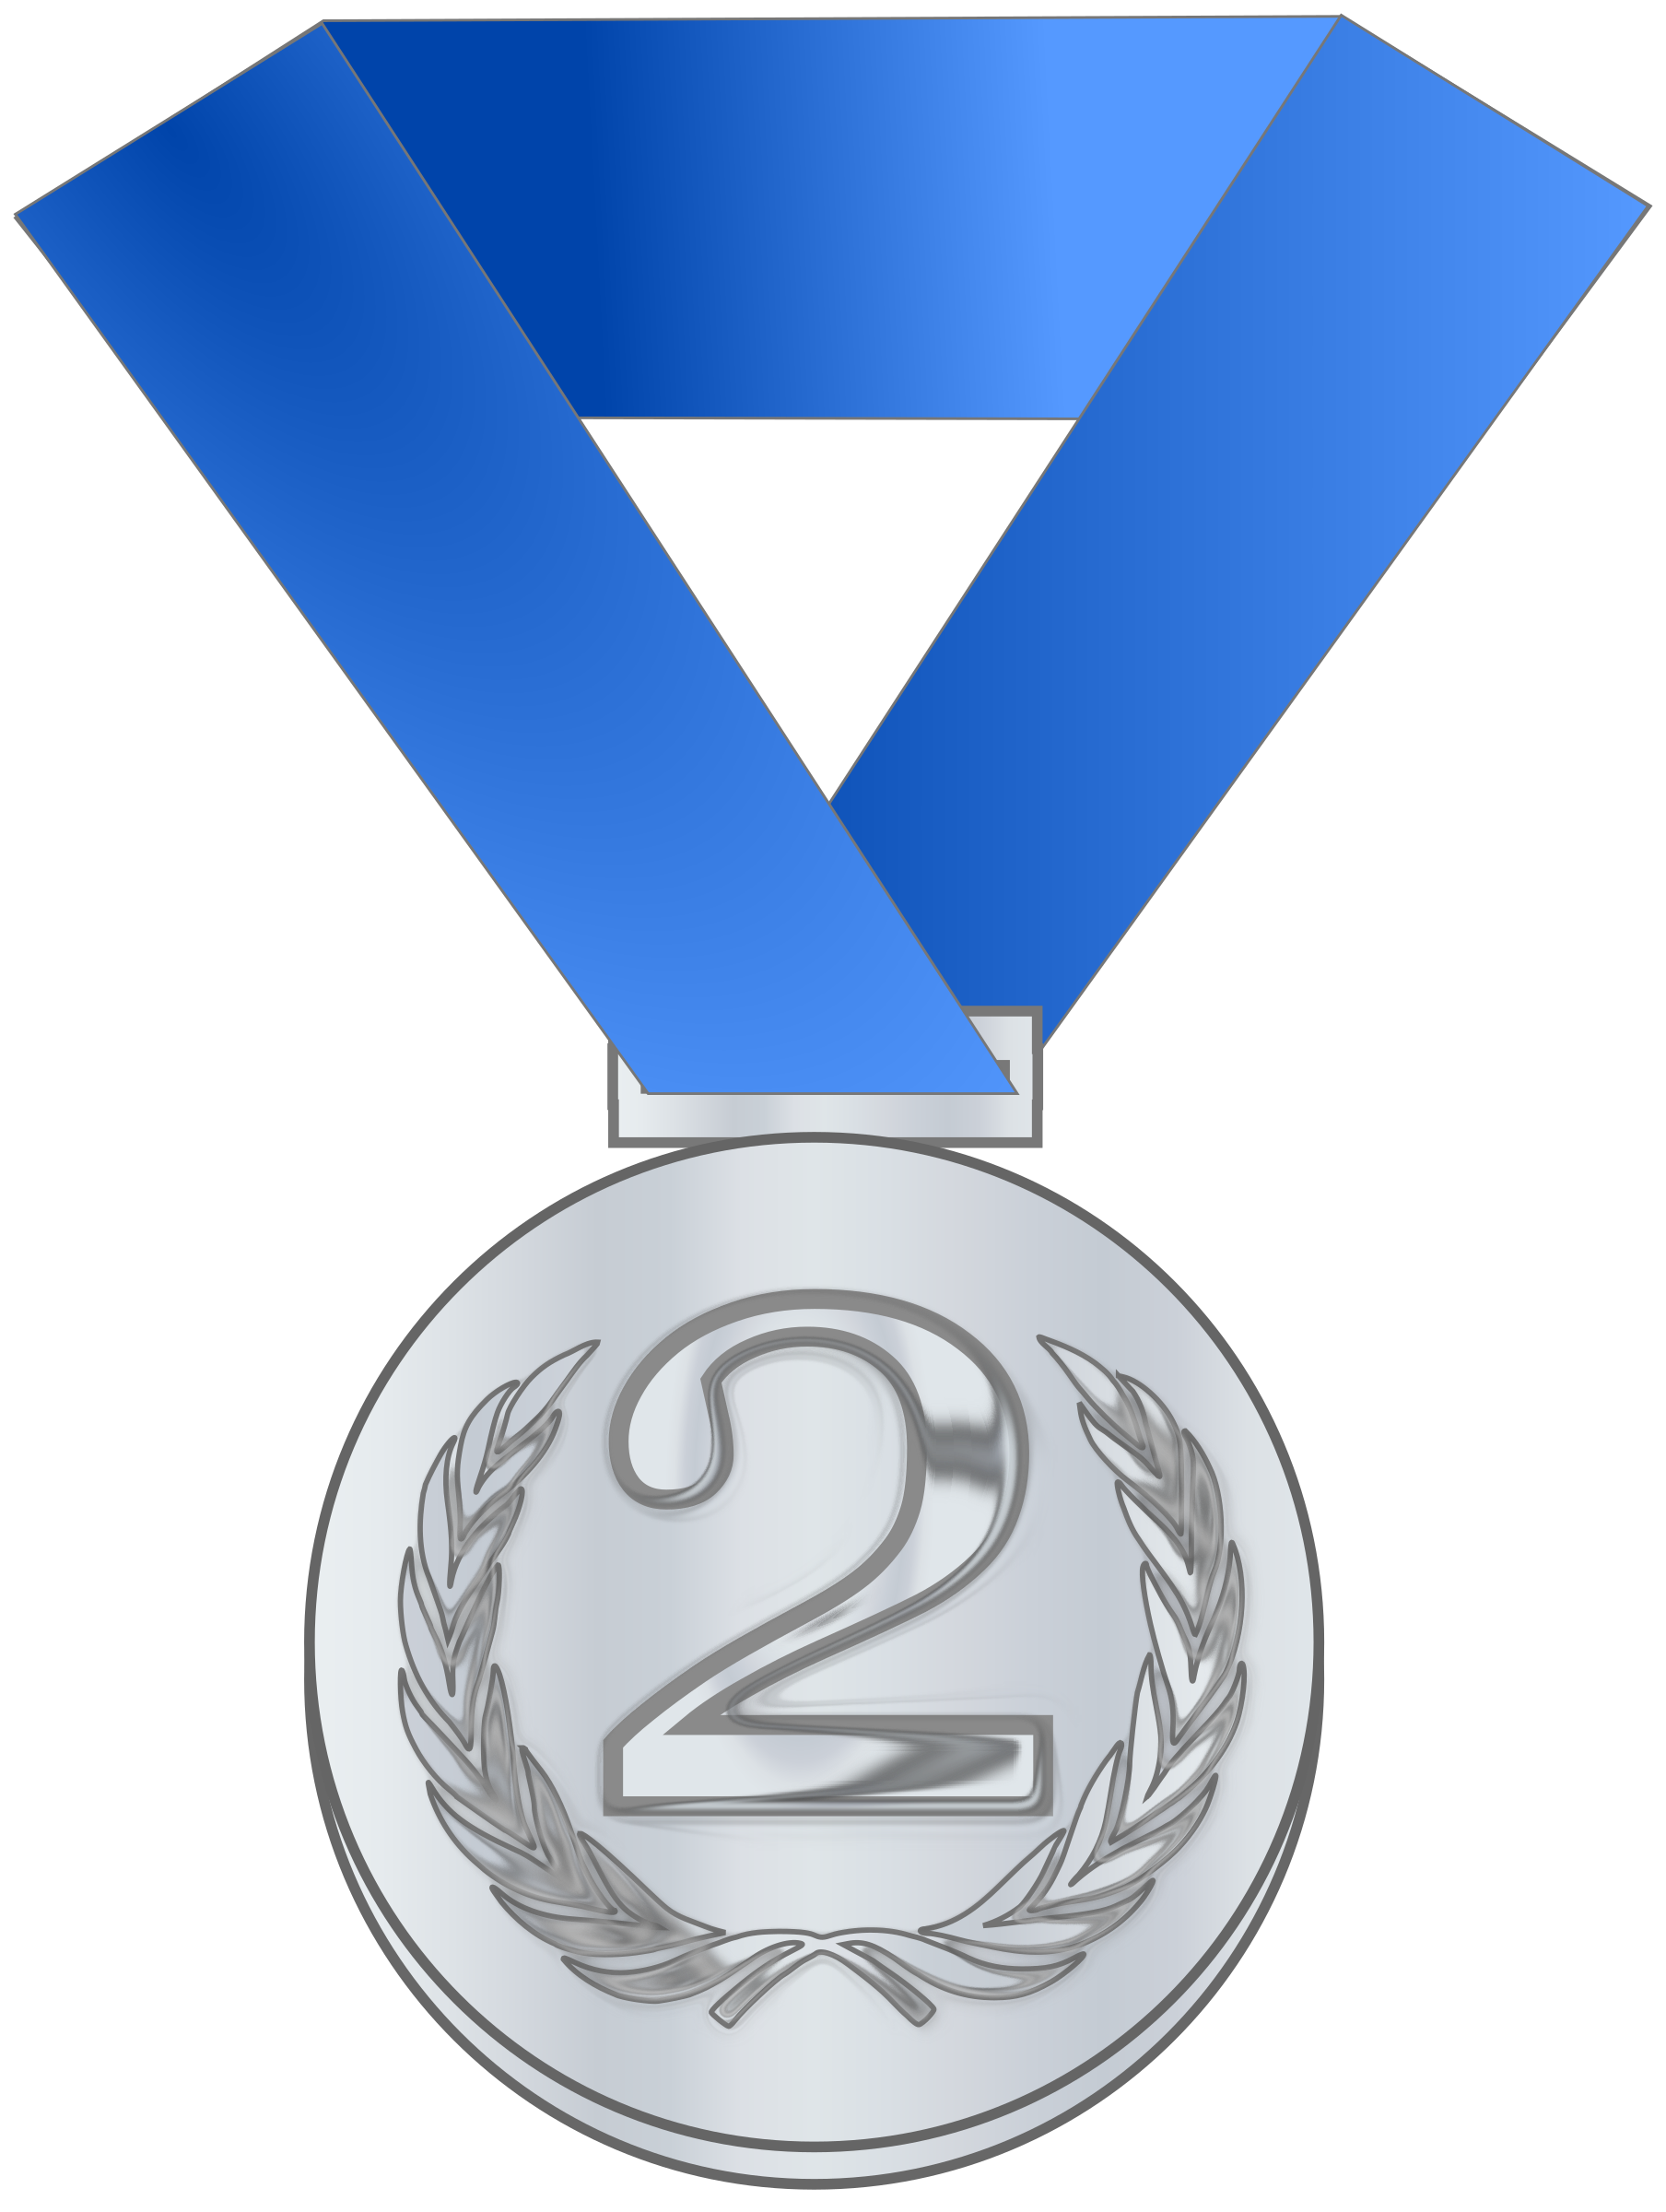 Silver Medal Png Www Pixshark Com Images Galleries